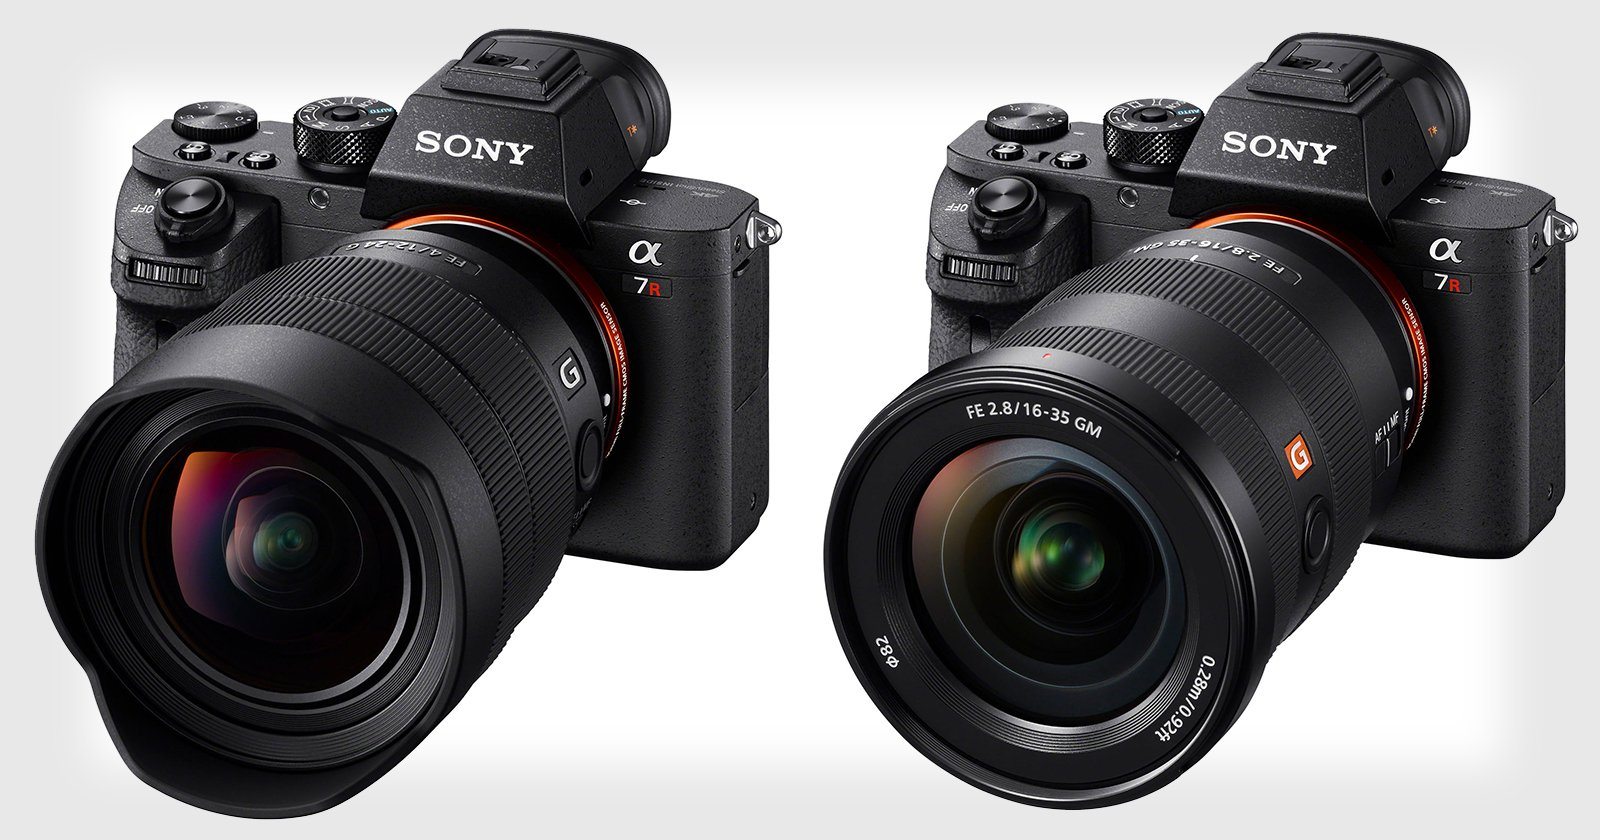 Sony Unveils 2 New Zoom Lenses: 12-24mm f/4 G  and 16-35mm f/2.8 GM